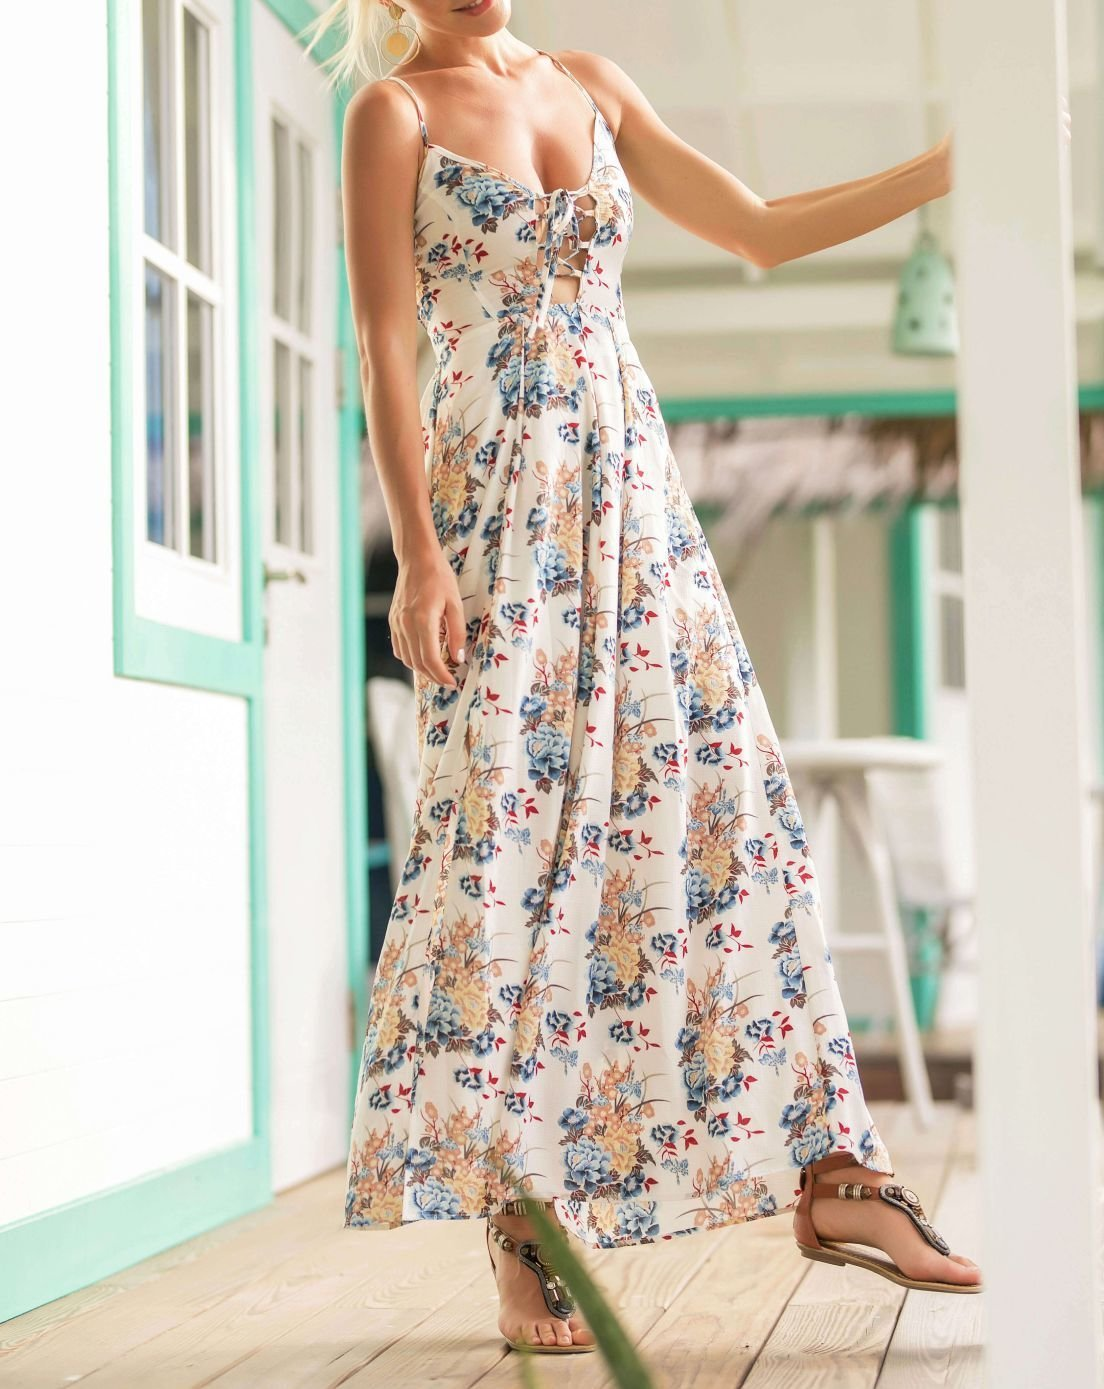 Slip Dress in Maxi Length with Laced Front